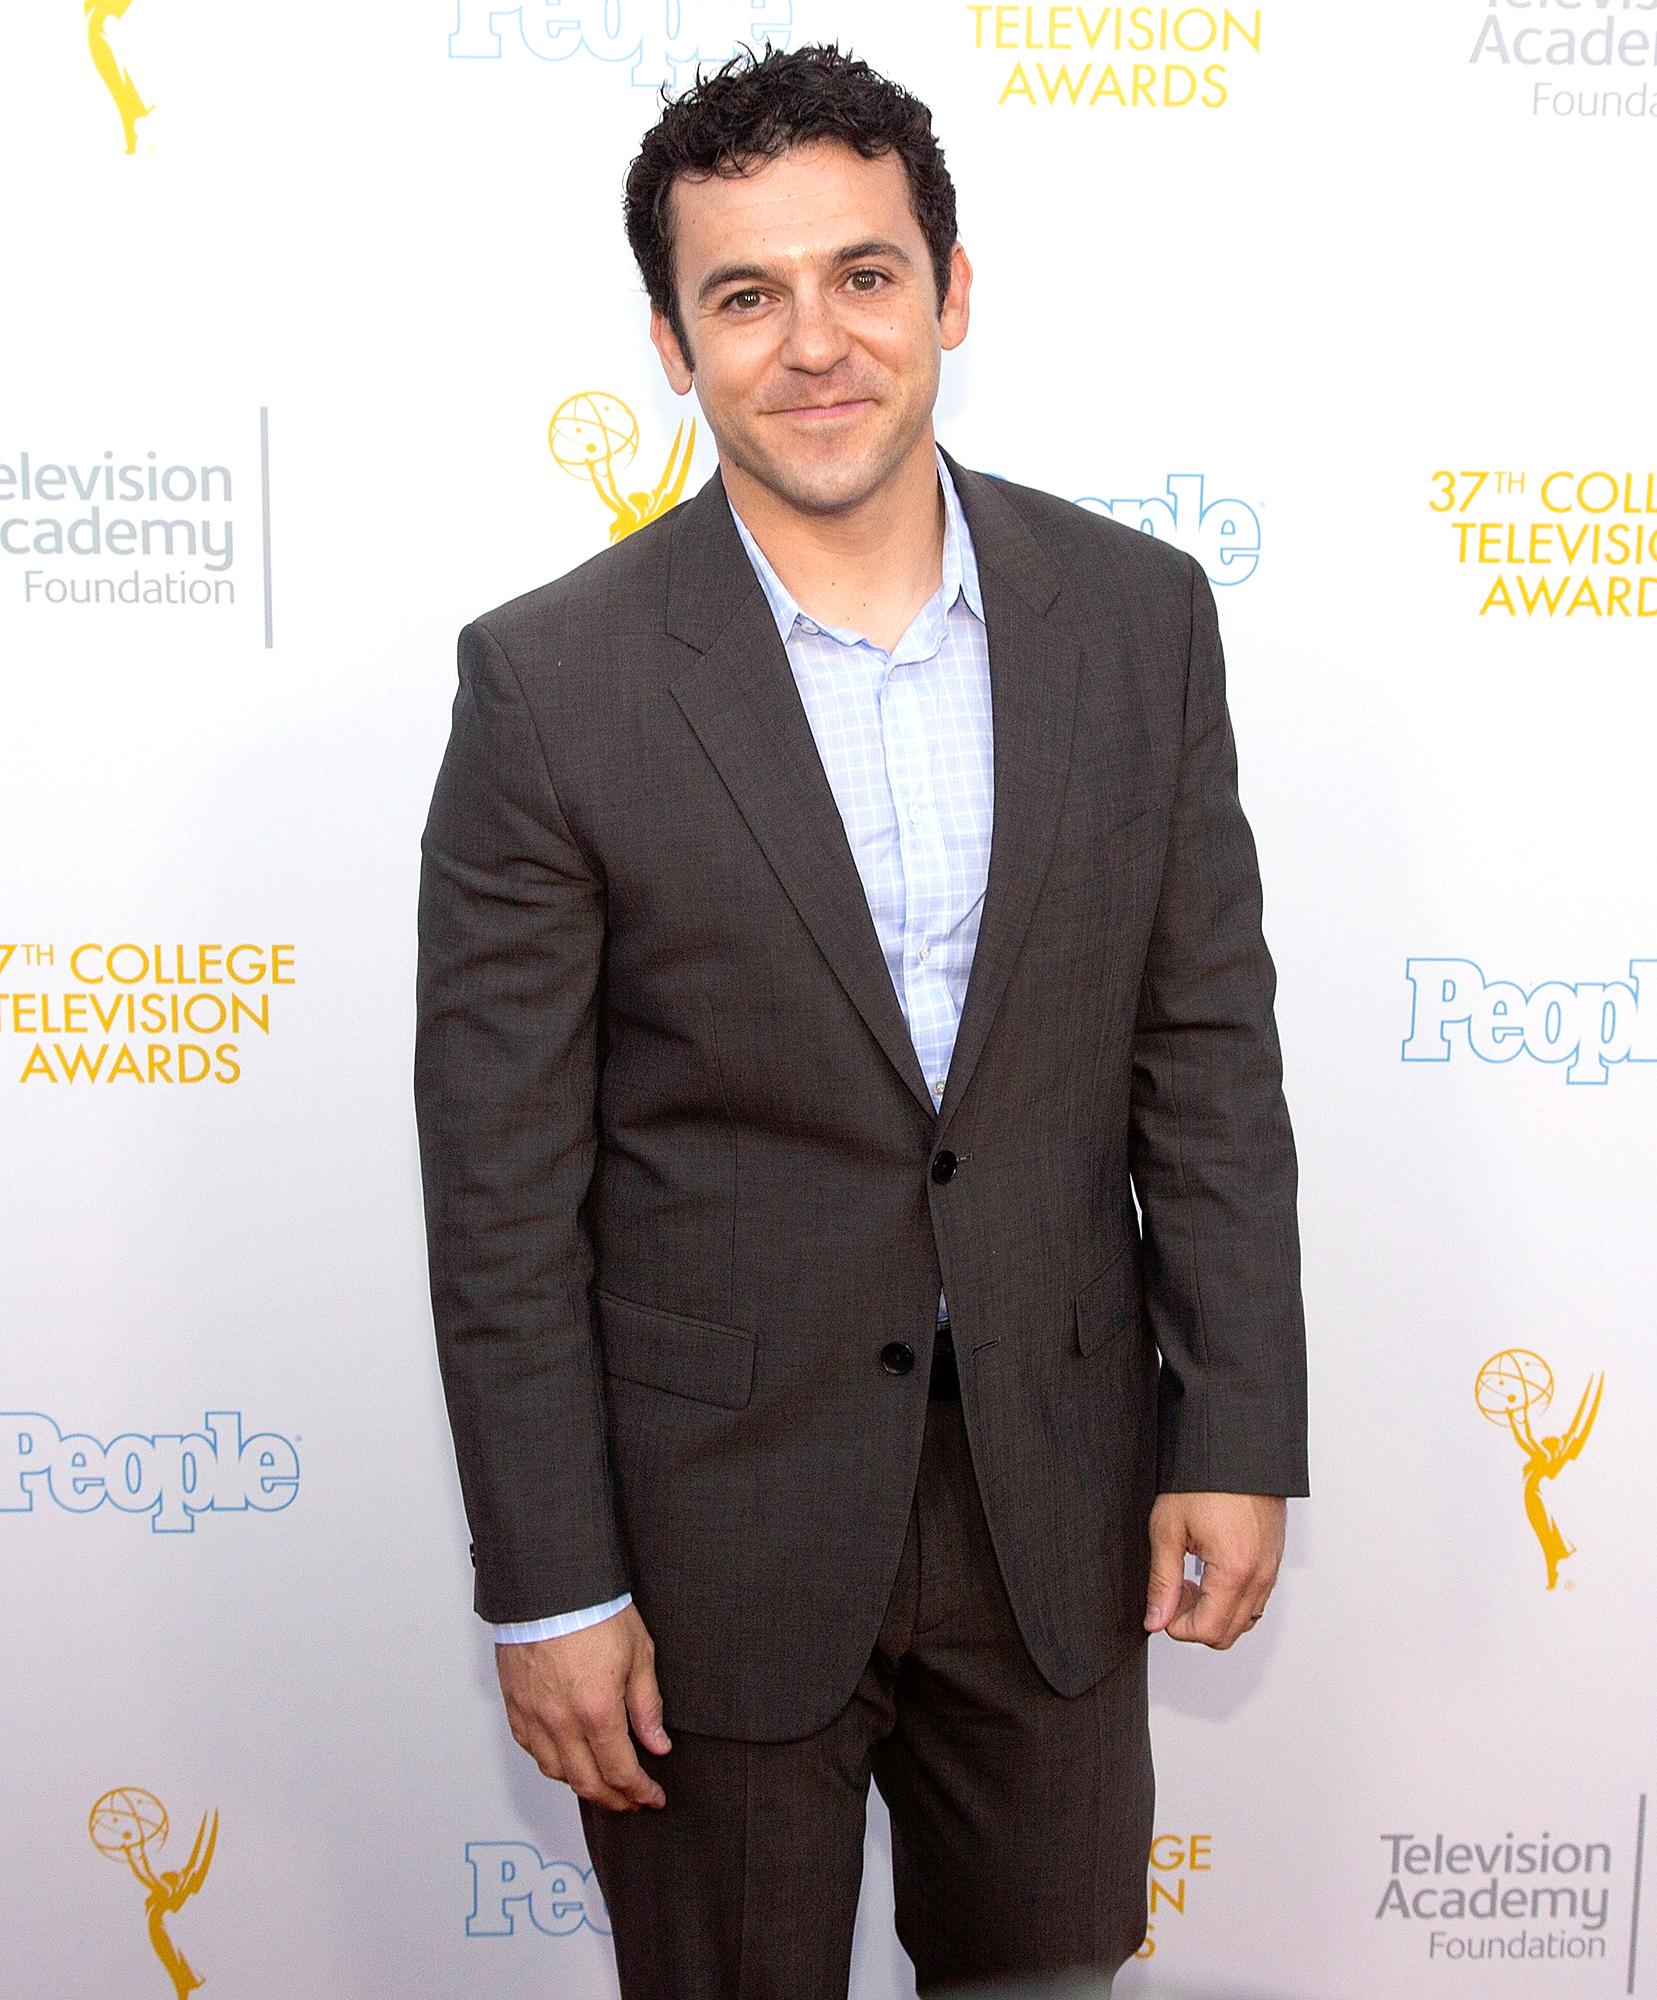 37th College Television Awards - Arrivals